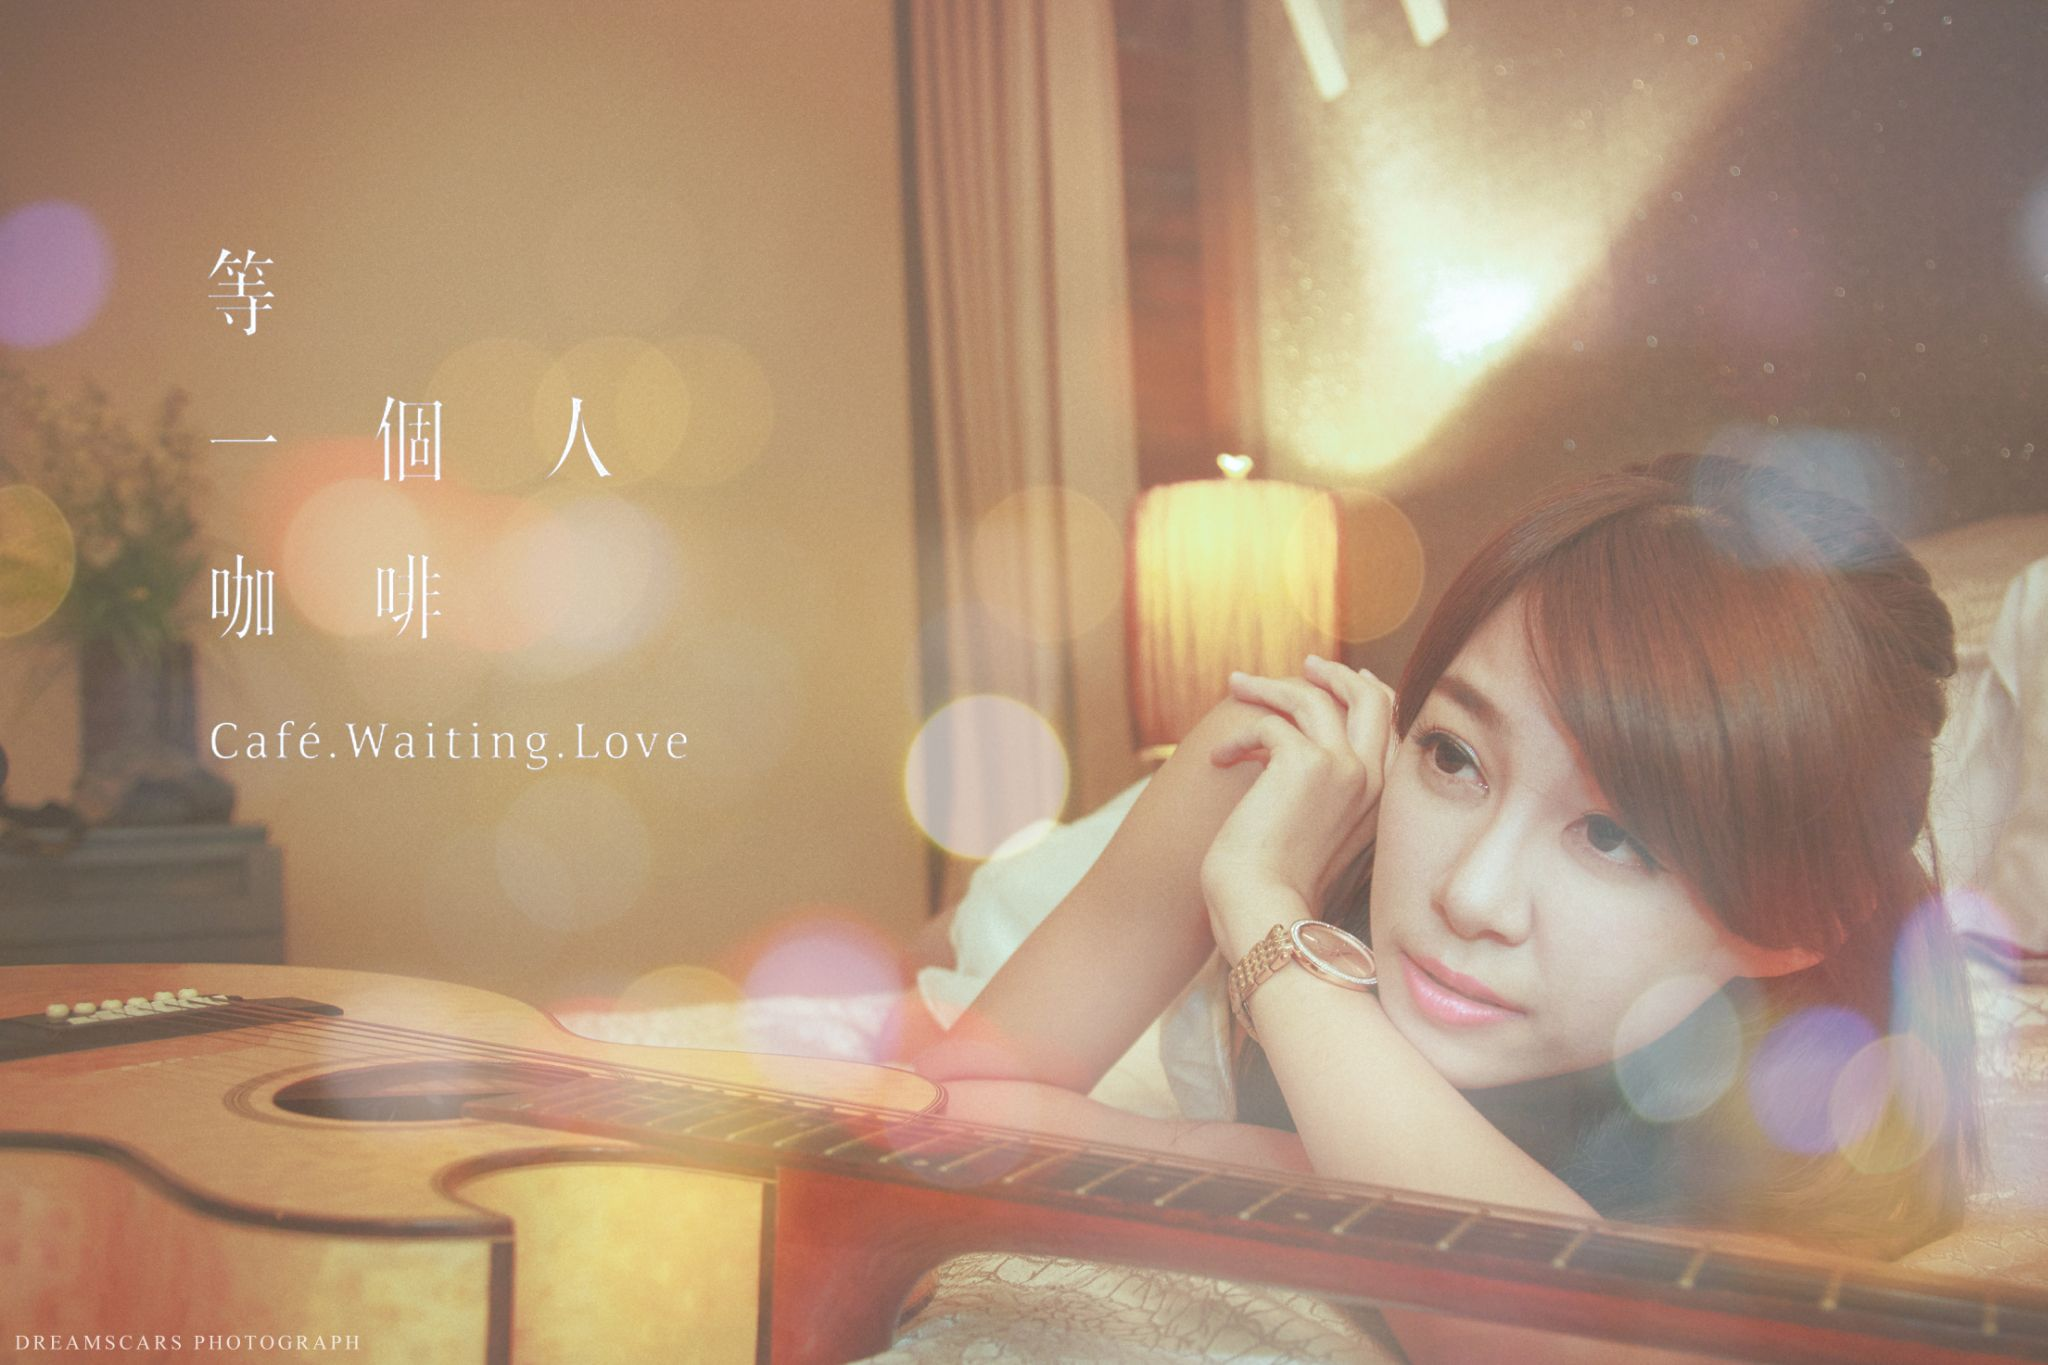 Cafe'.Waiting.Love by Zack Cheng